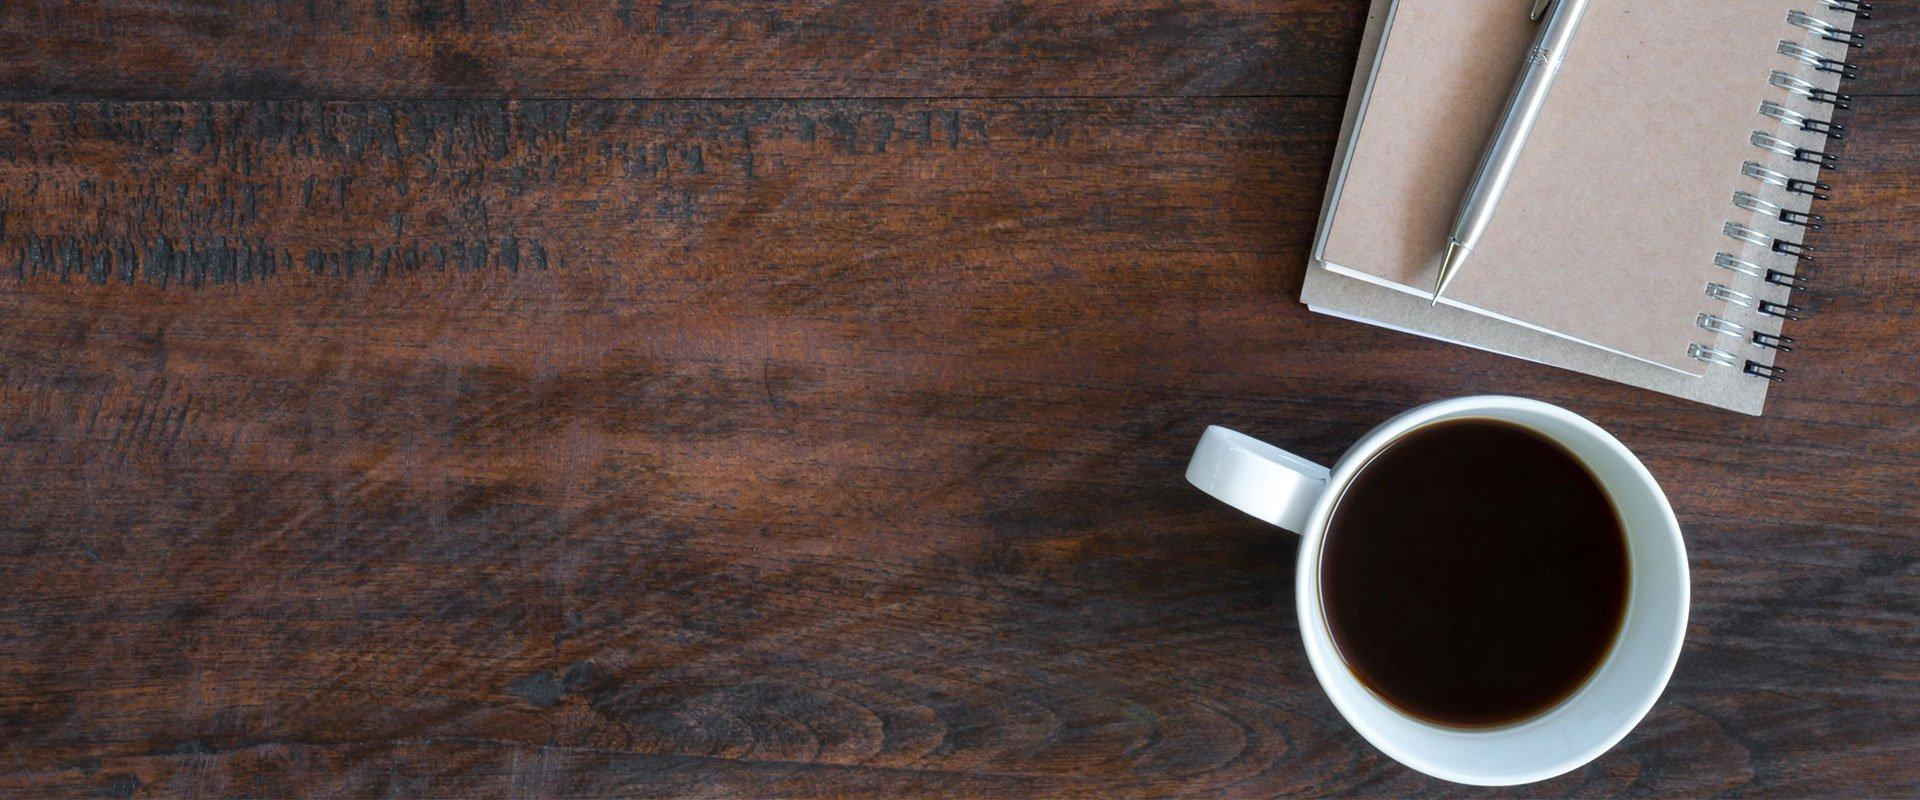 a journal and a cup of coffee on a table